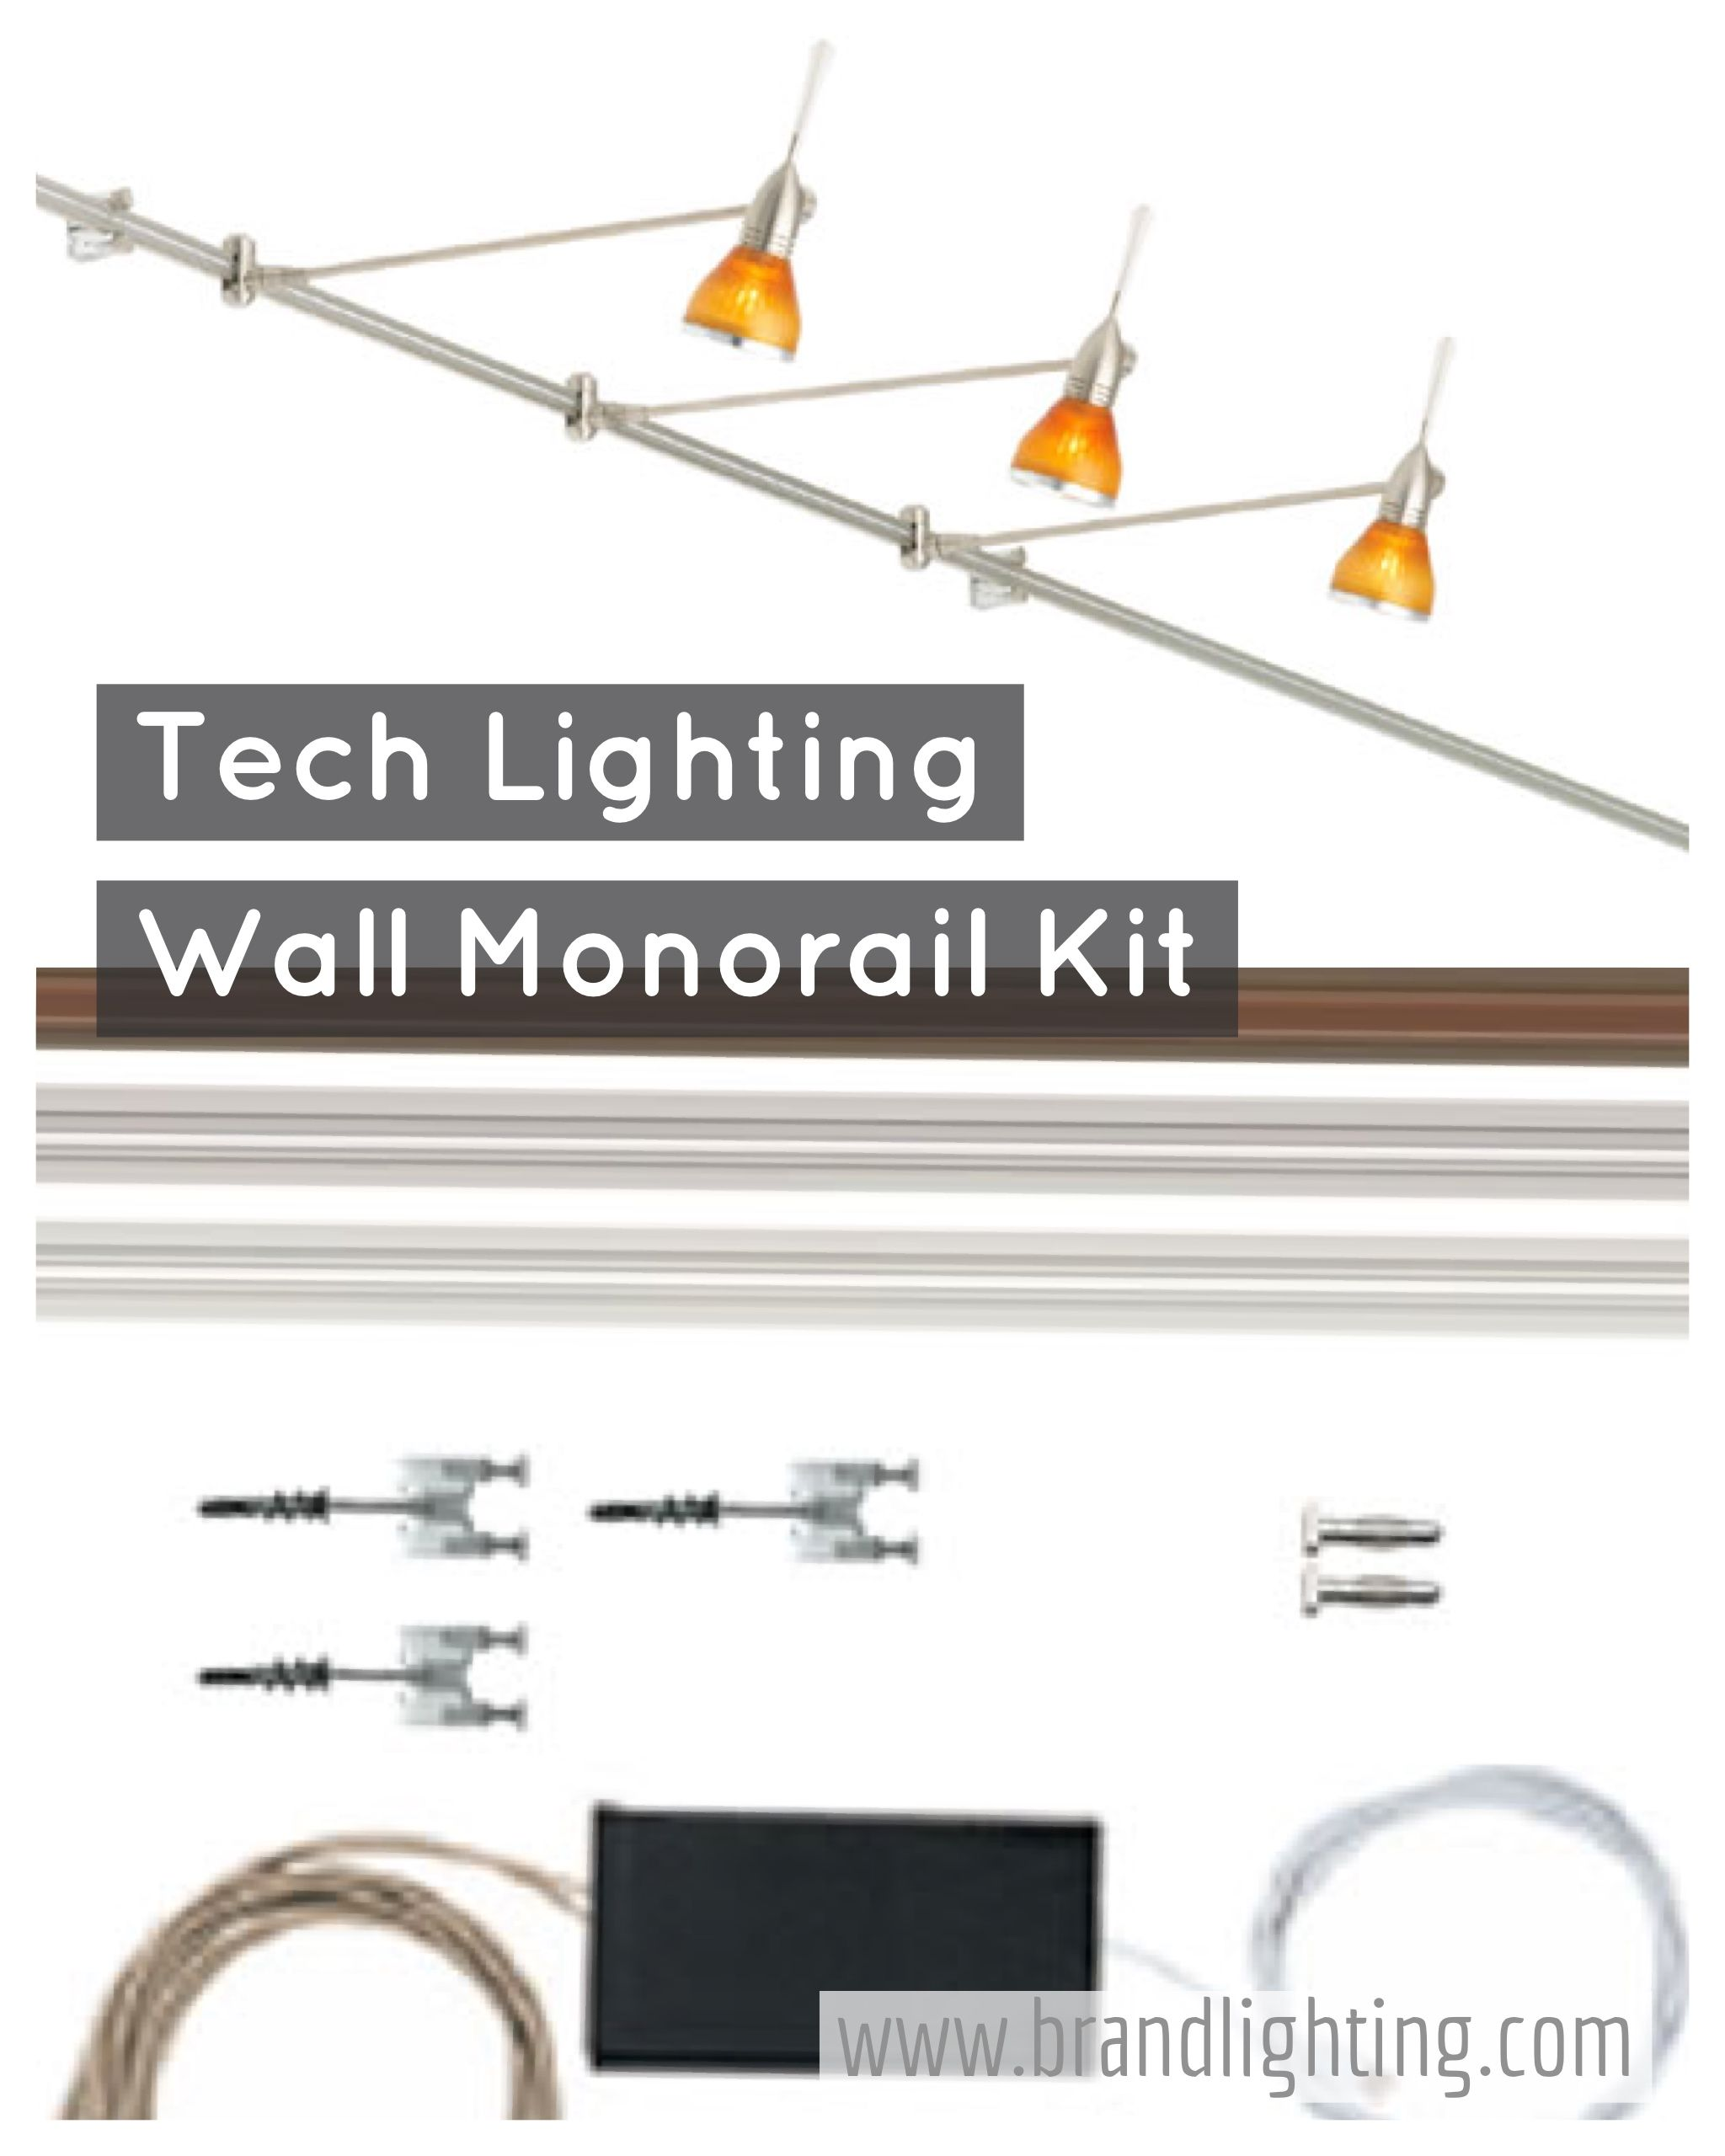 Tech Lighting Wall Monorail Kit for picture lighting  sc 1 st  Pinterest & Tech Lighting Wall Monorail Kit for picture lighting | Picture ... azcodes.com